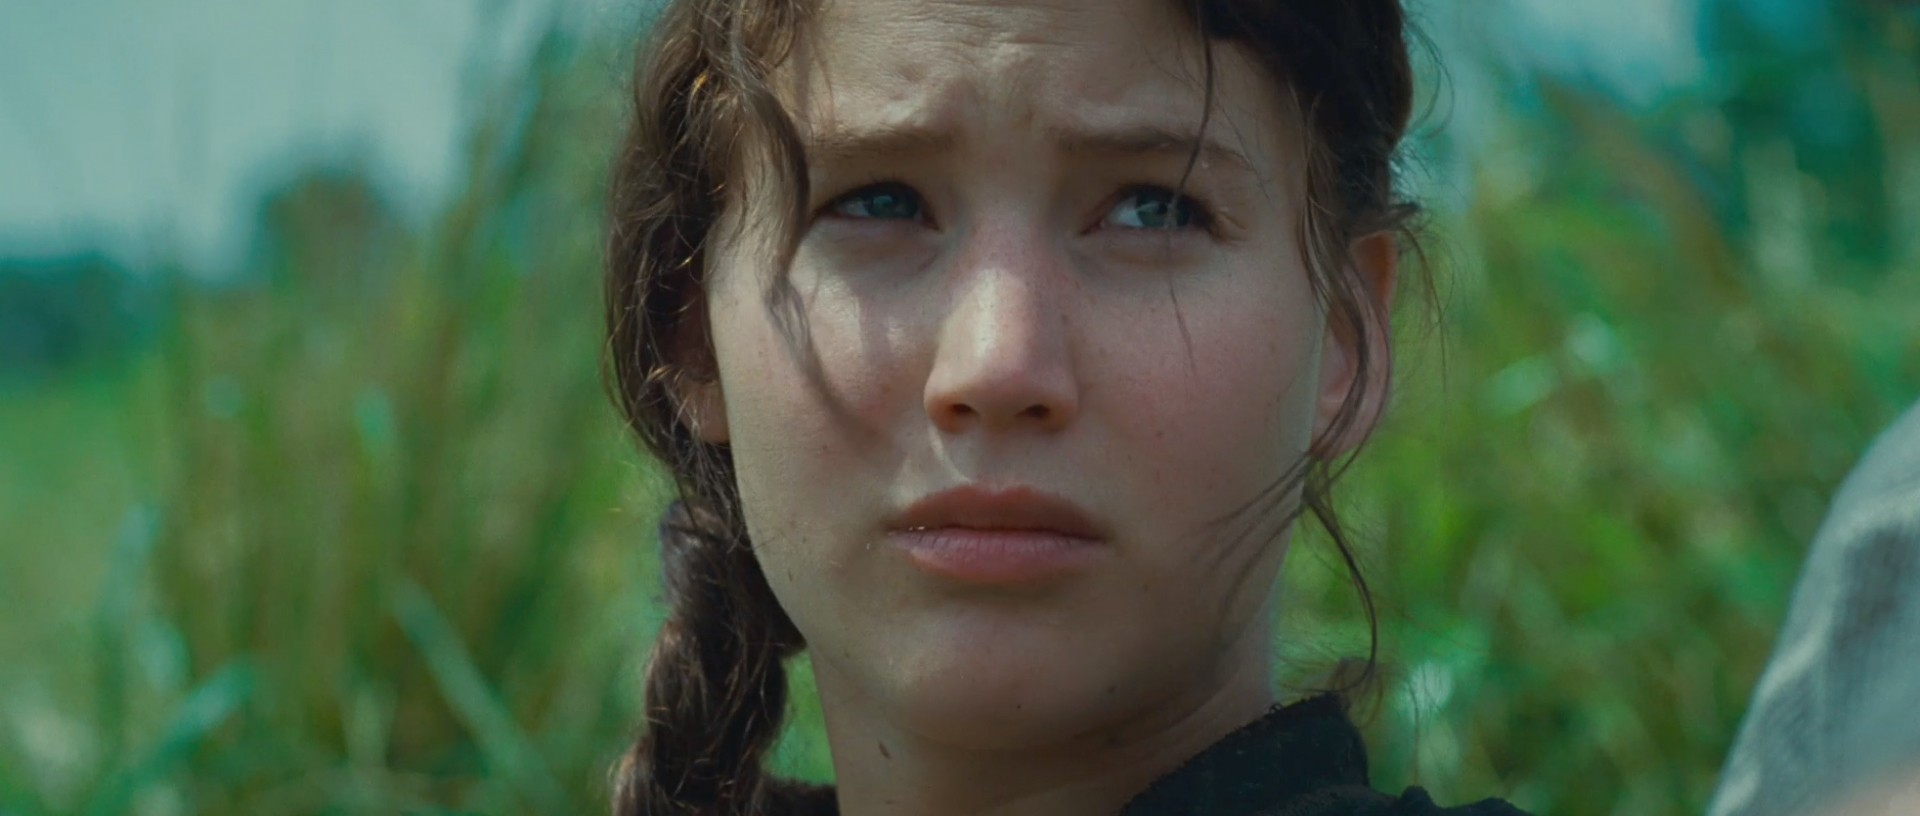 three reasons why katniss everdeen would dazzle as a ceo delta katniss everdeen katniss everdeen 31152991 1920 816